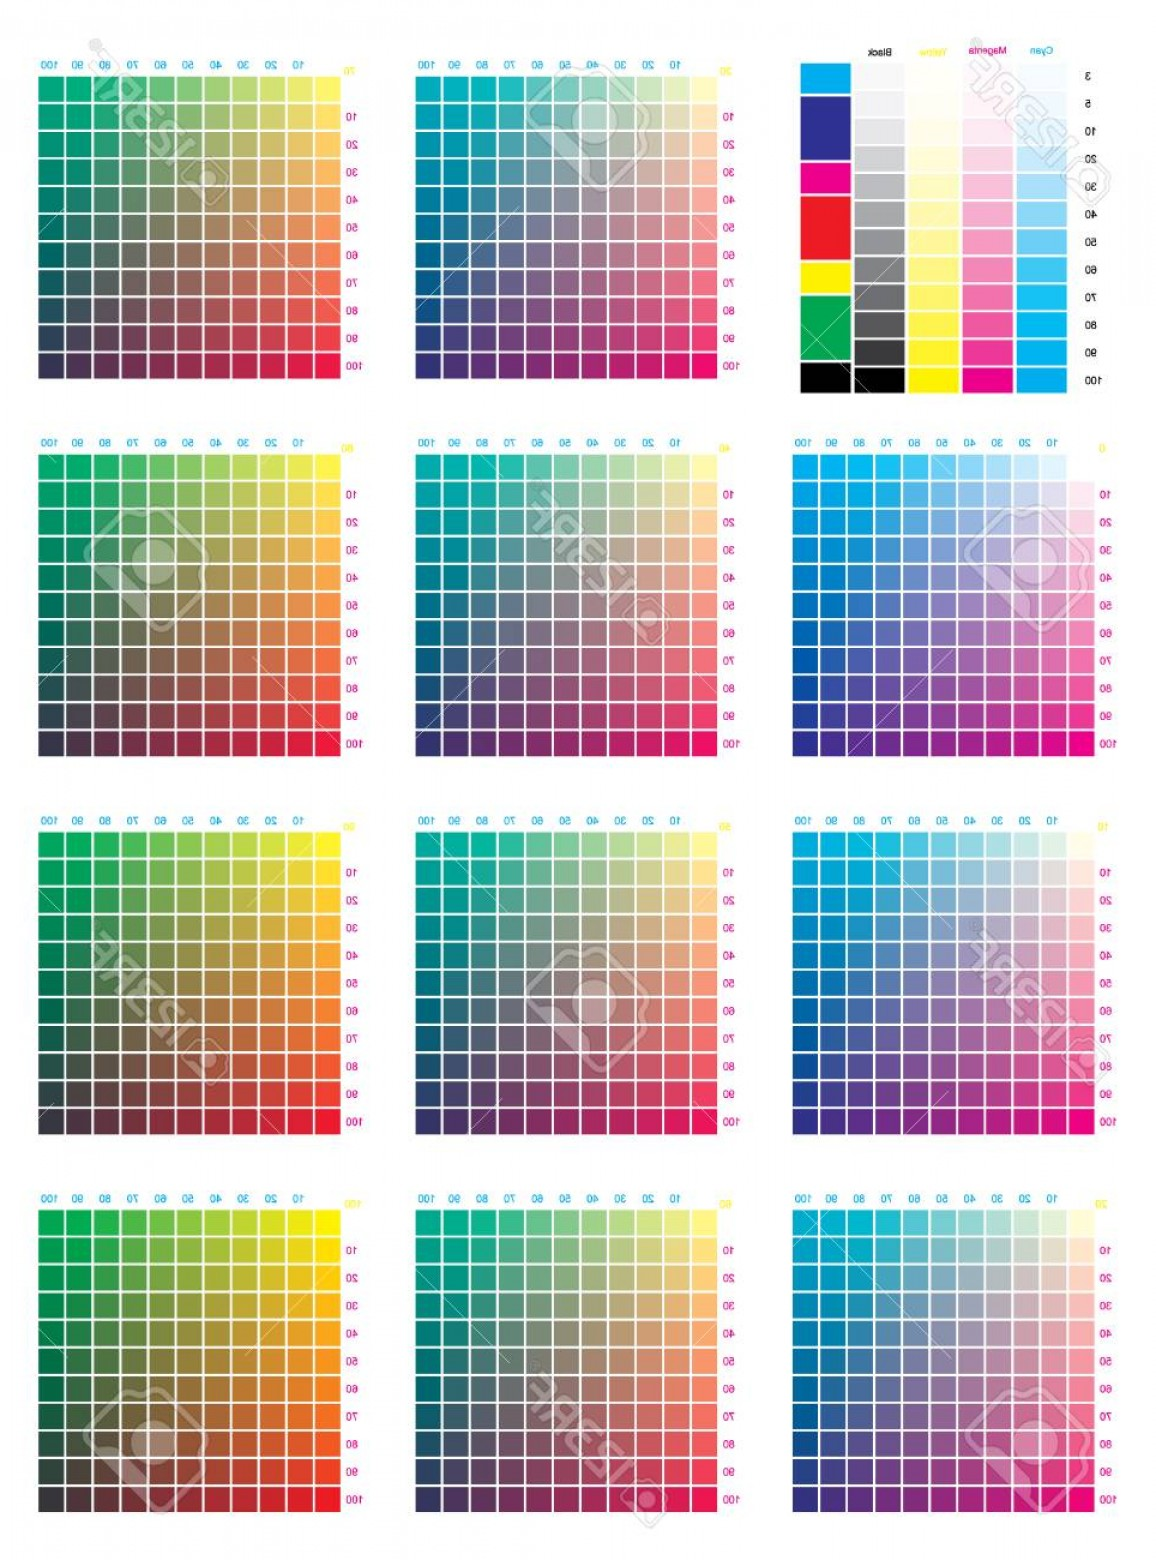 Color CMYK Chart Vector Free: Photostock Vector Cmyk Press Color Chart Vector Color Palette Cmyk Process Printing Match For Digital Design Animation